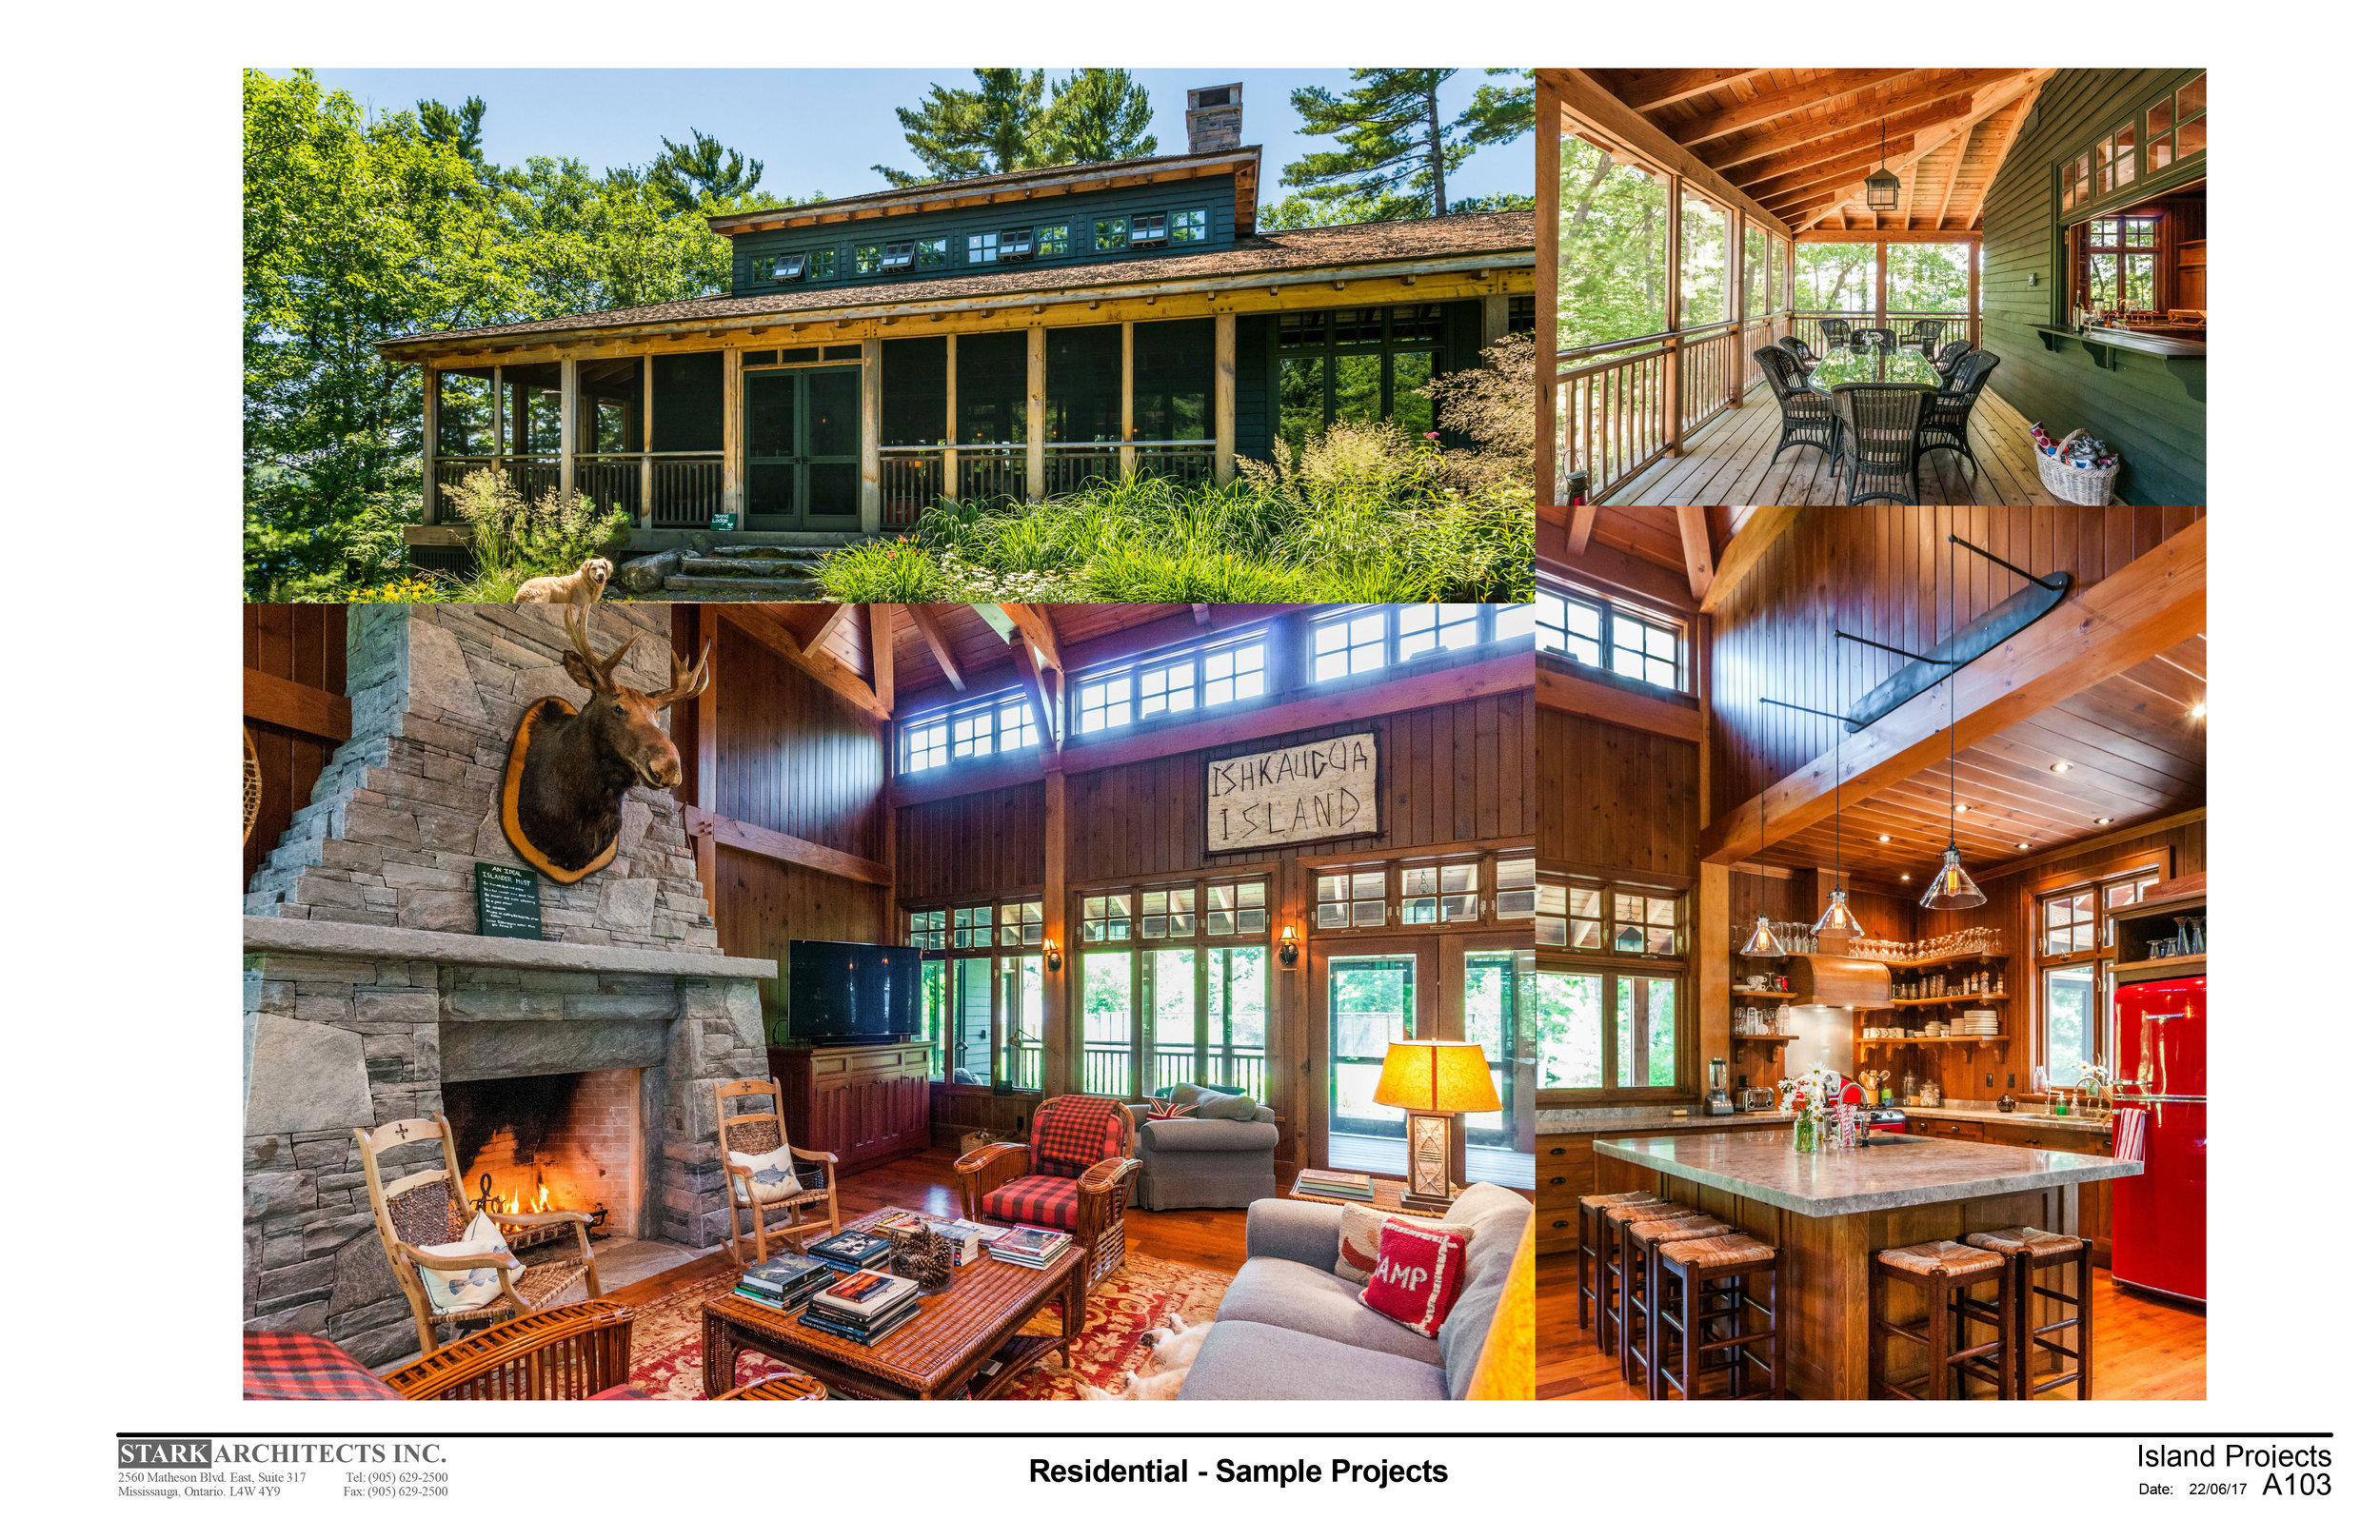 STARK ARCHITECTS INC - SAMPLE PROJECTS - RESIDENTIAL - 22-06-17 - A103.jpg